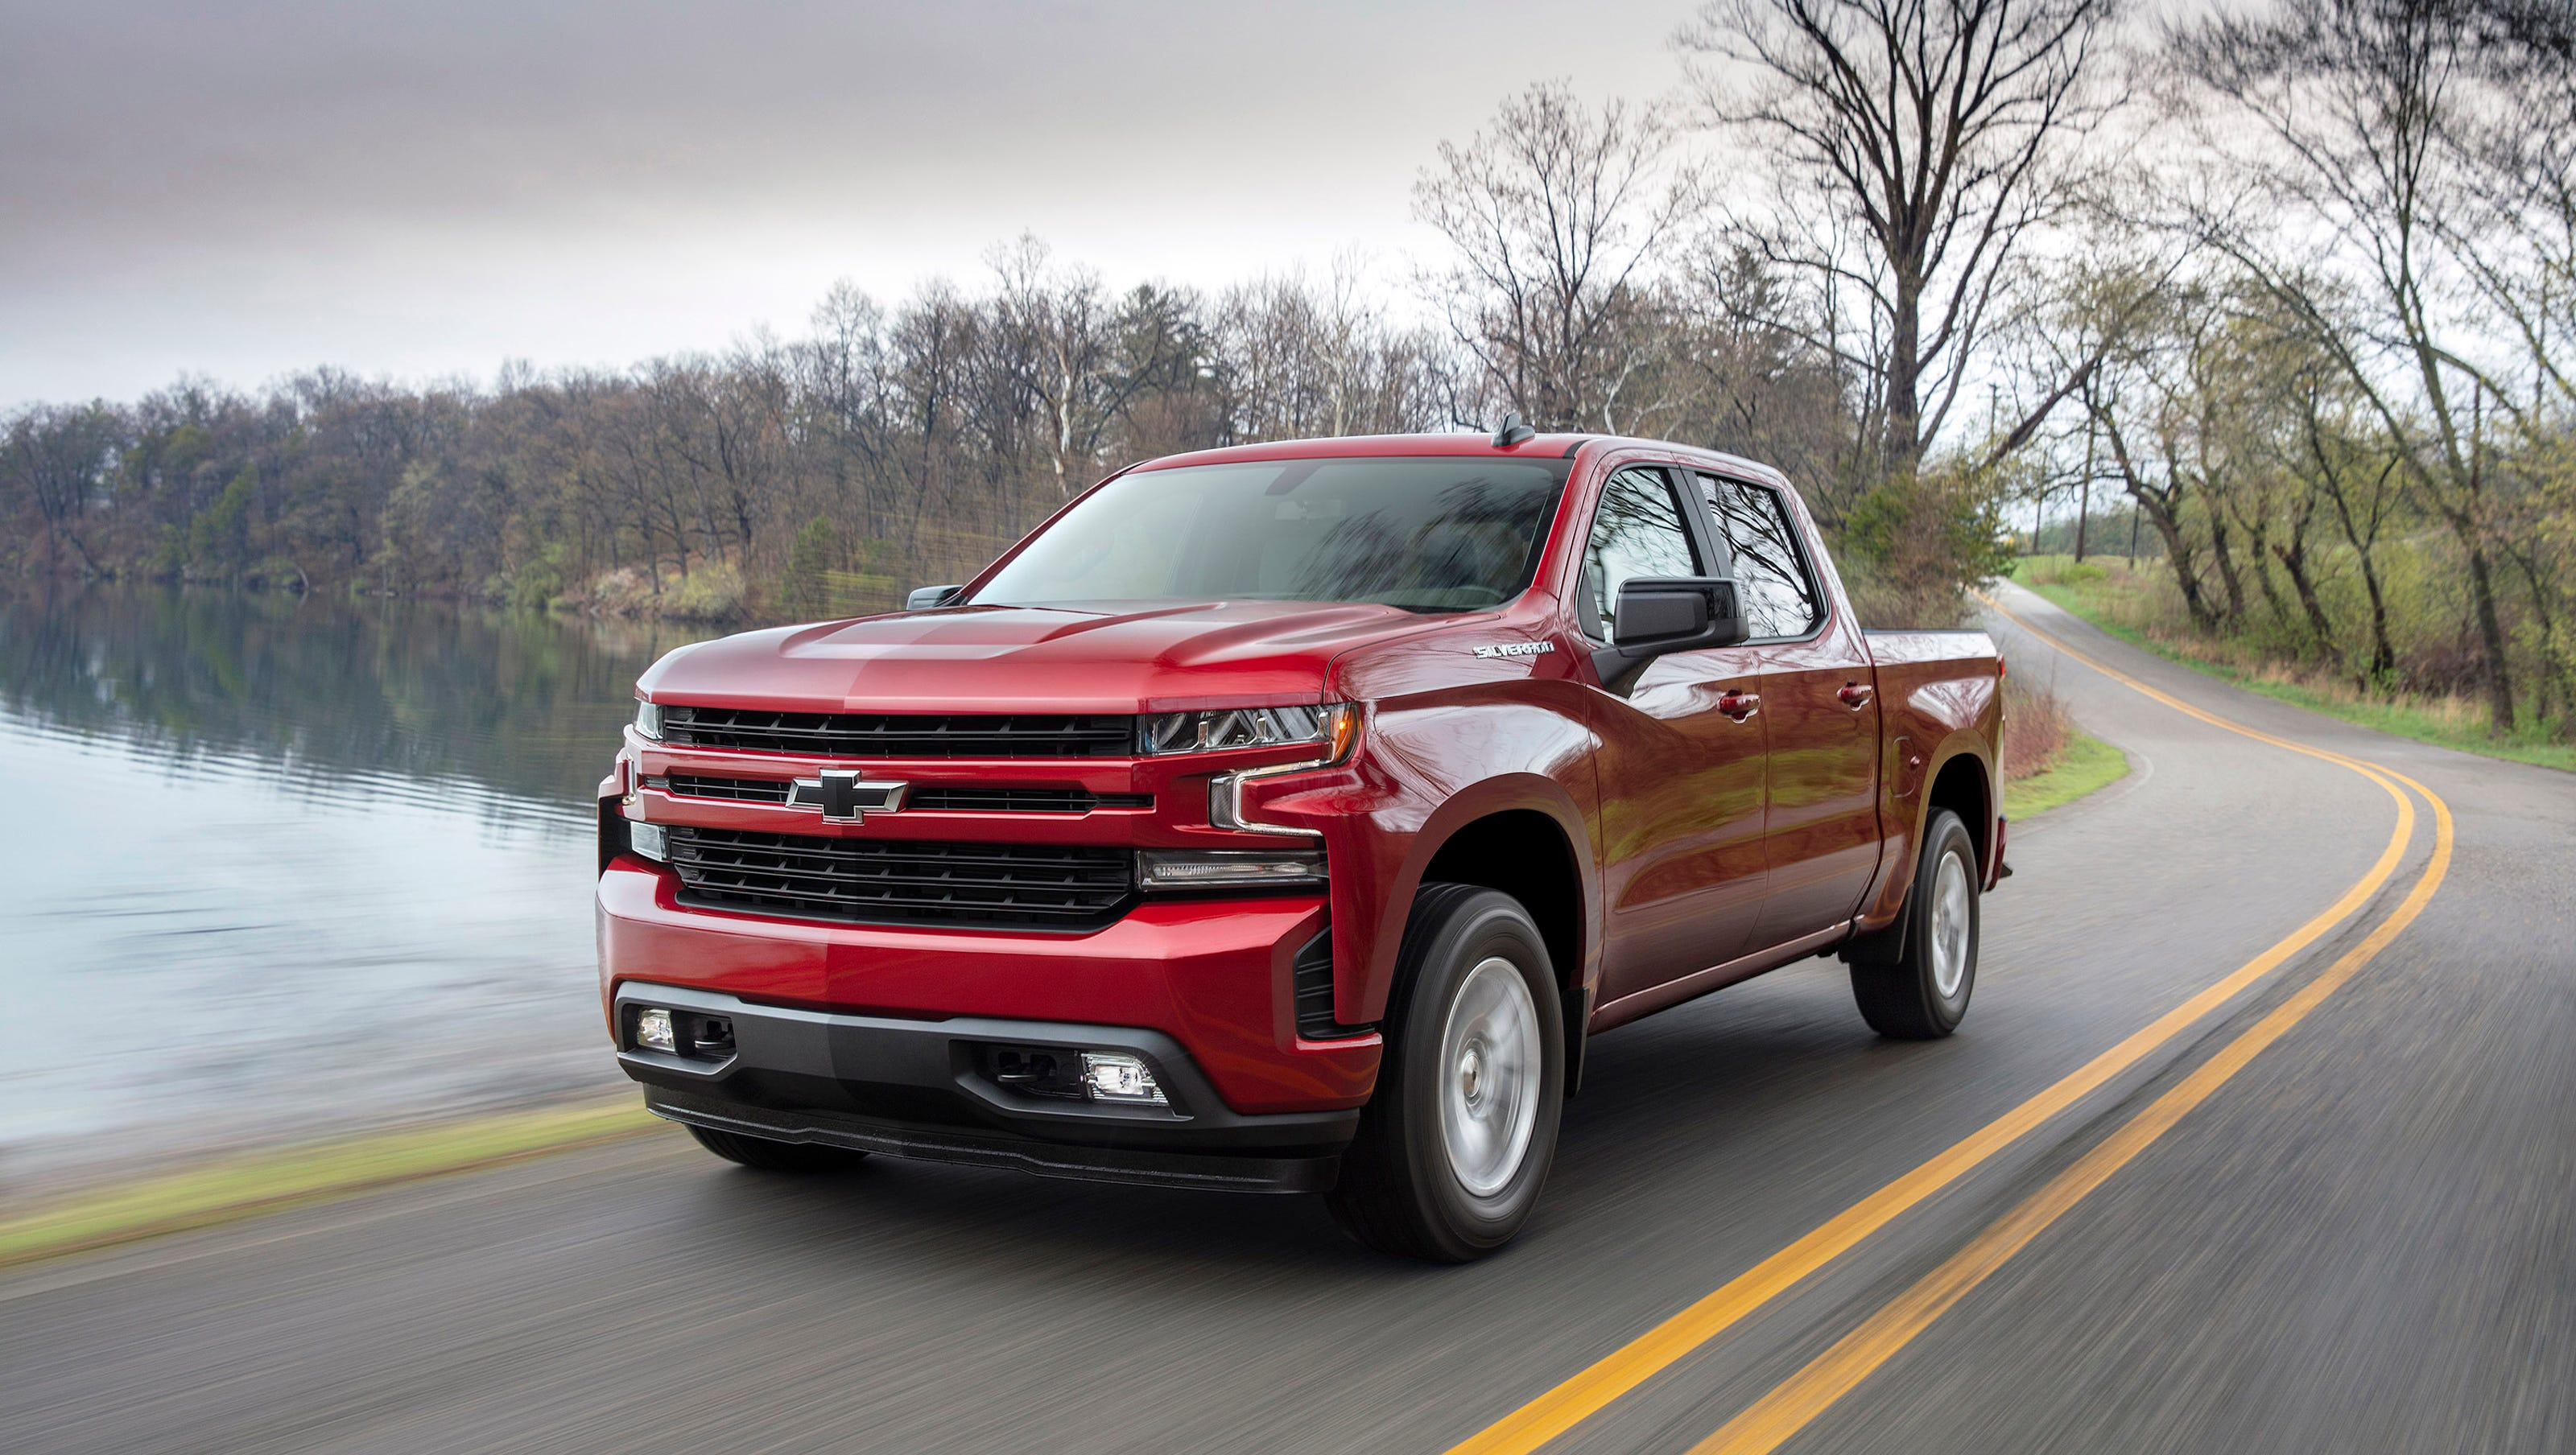 New Chevy Silverado >> First Drive: Chevy Silverado adds four-cylinder engine